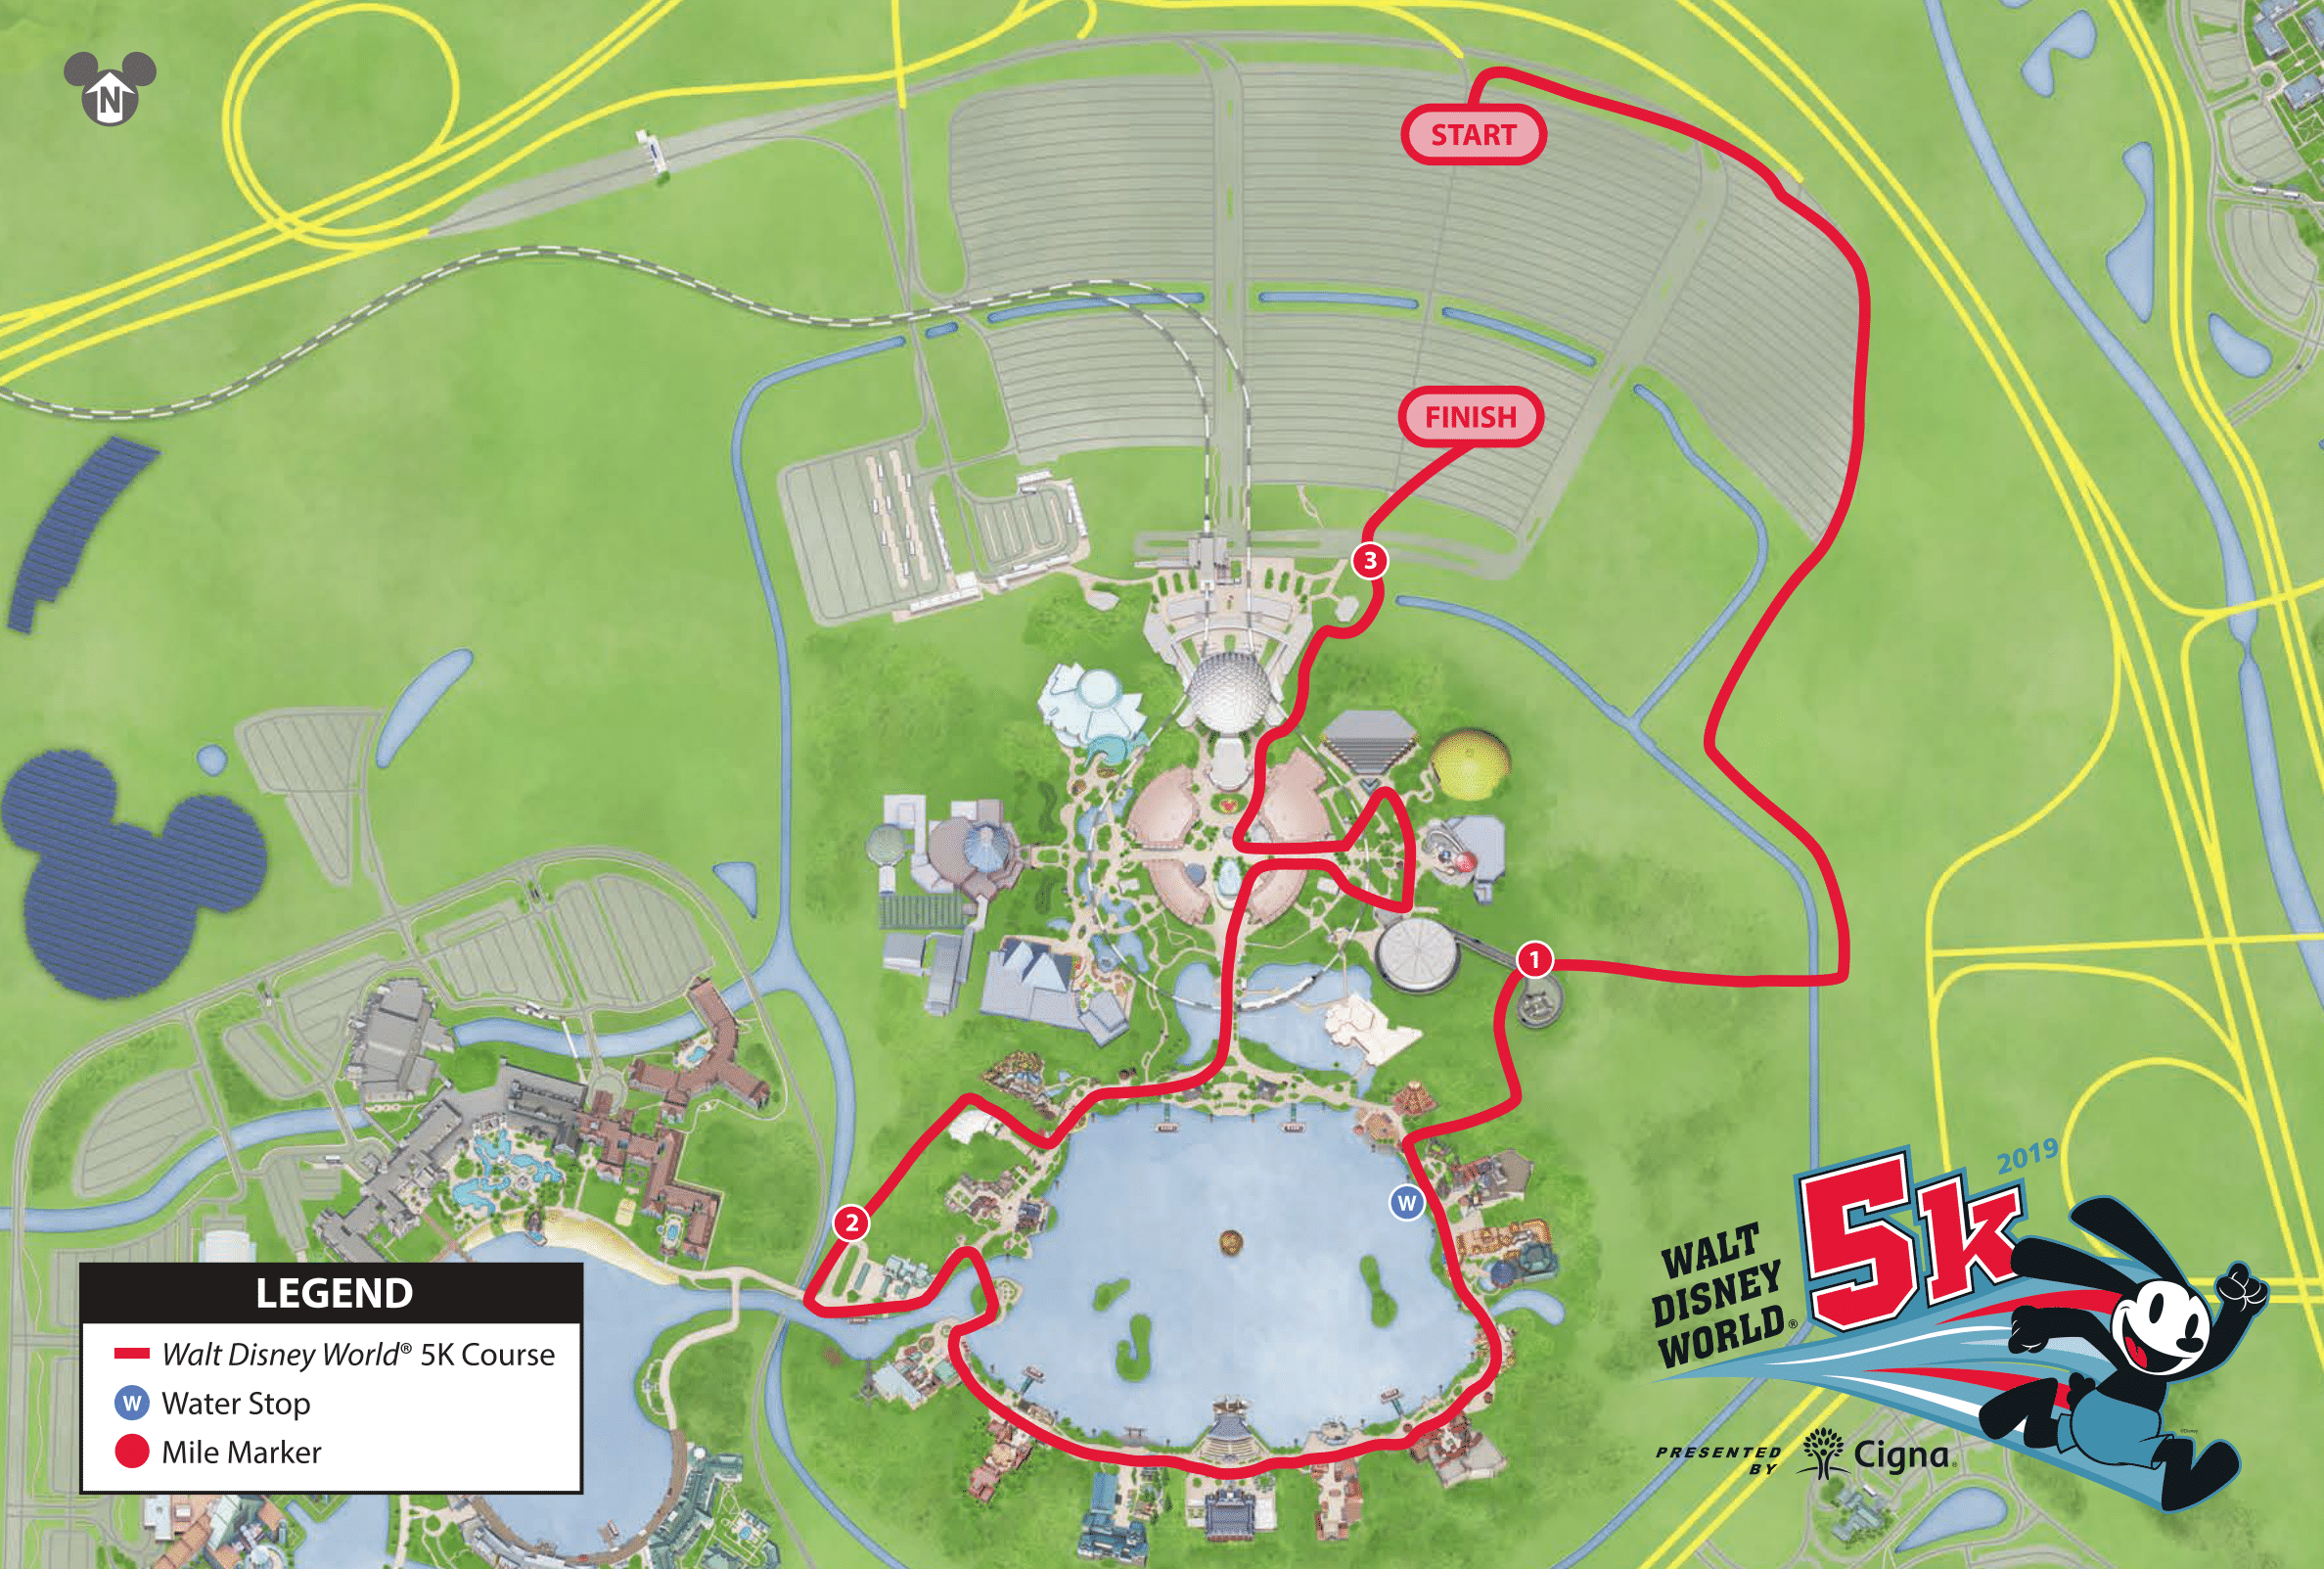 2019-WDW-5K-Course-Map-1.png